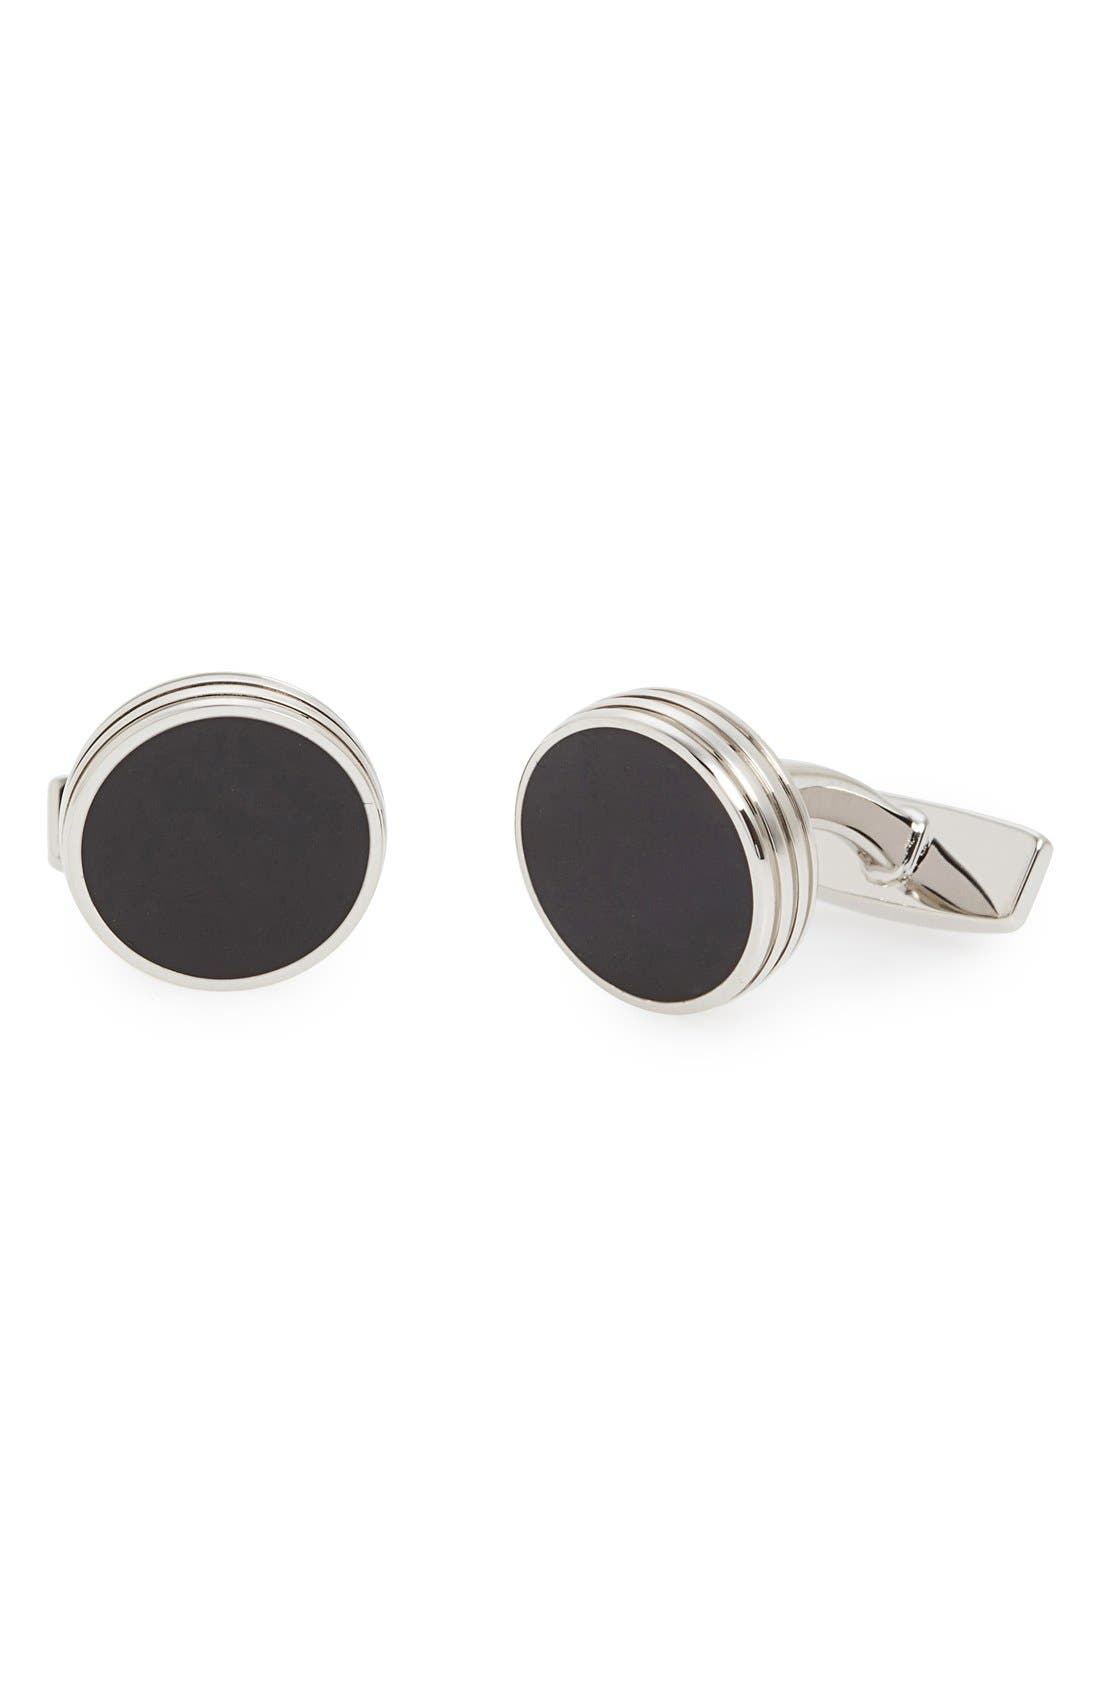 Alternate Image 1 Selected - BOSS 'Roy' Cuff Links